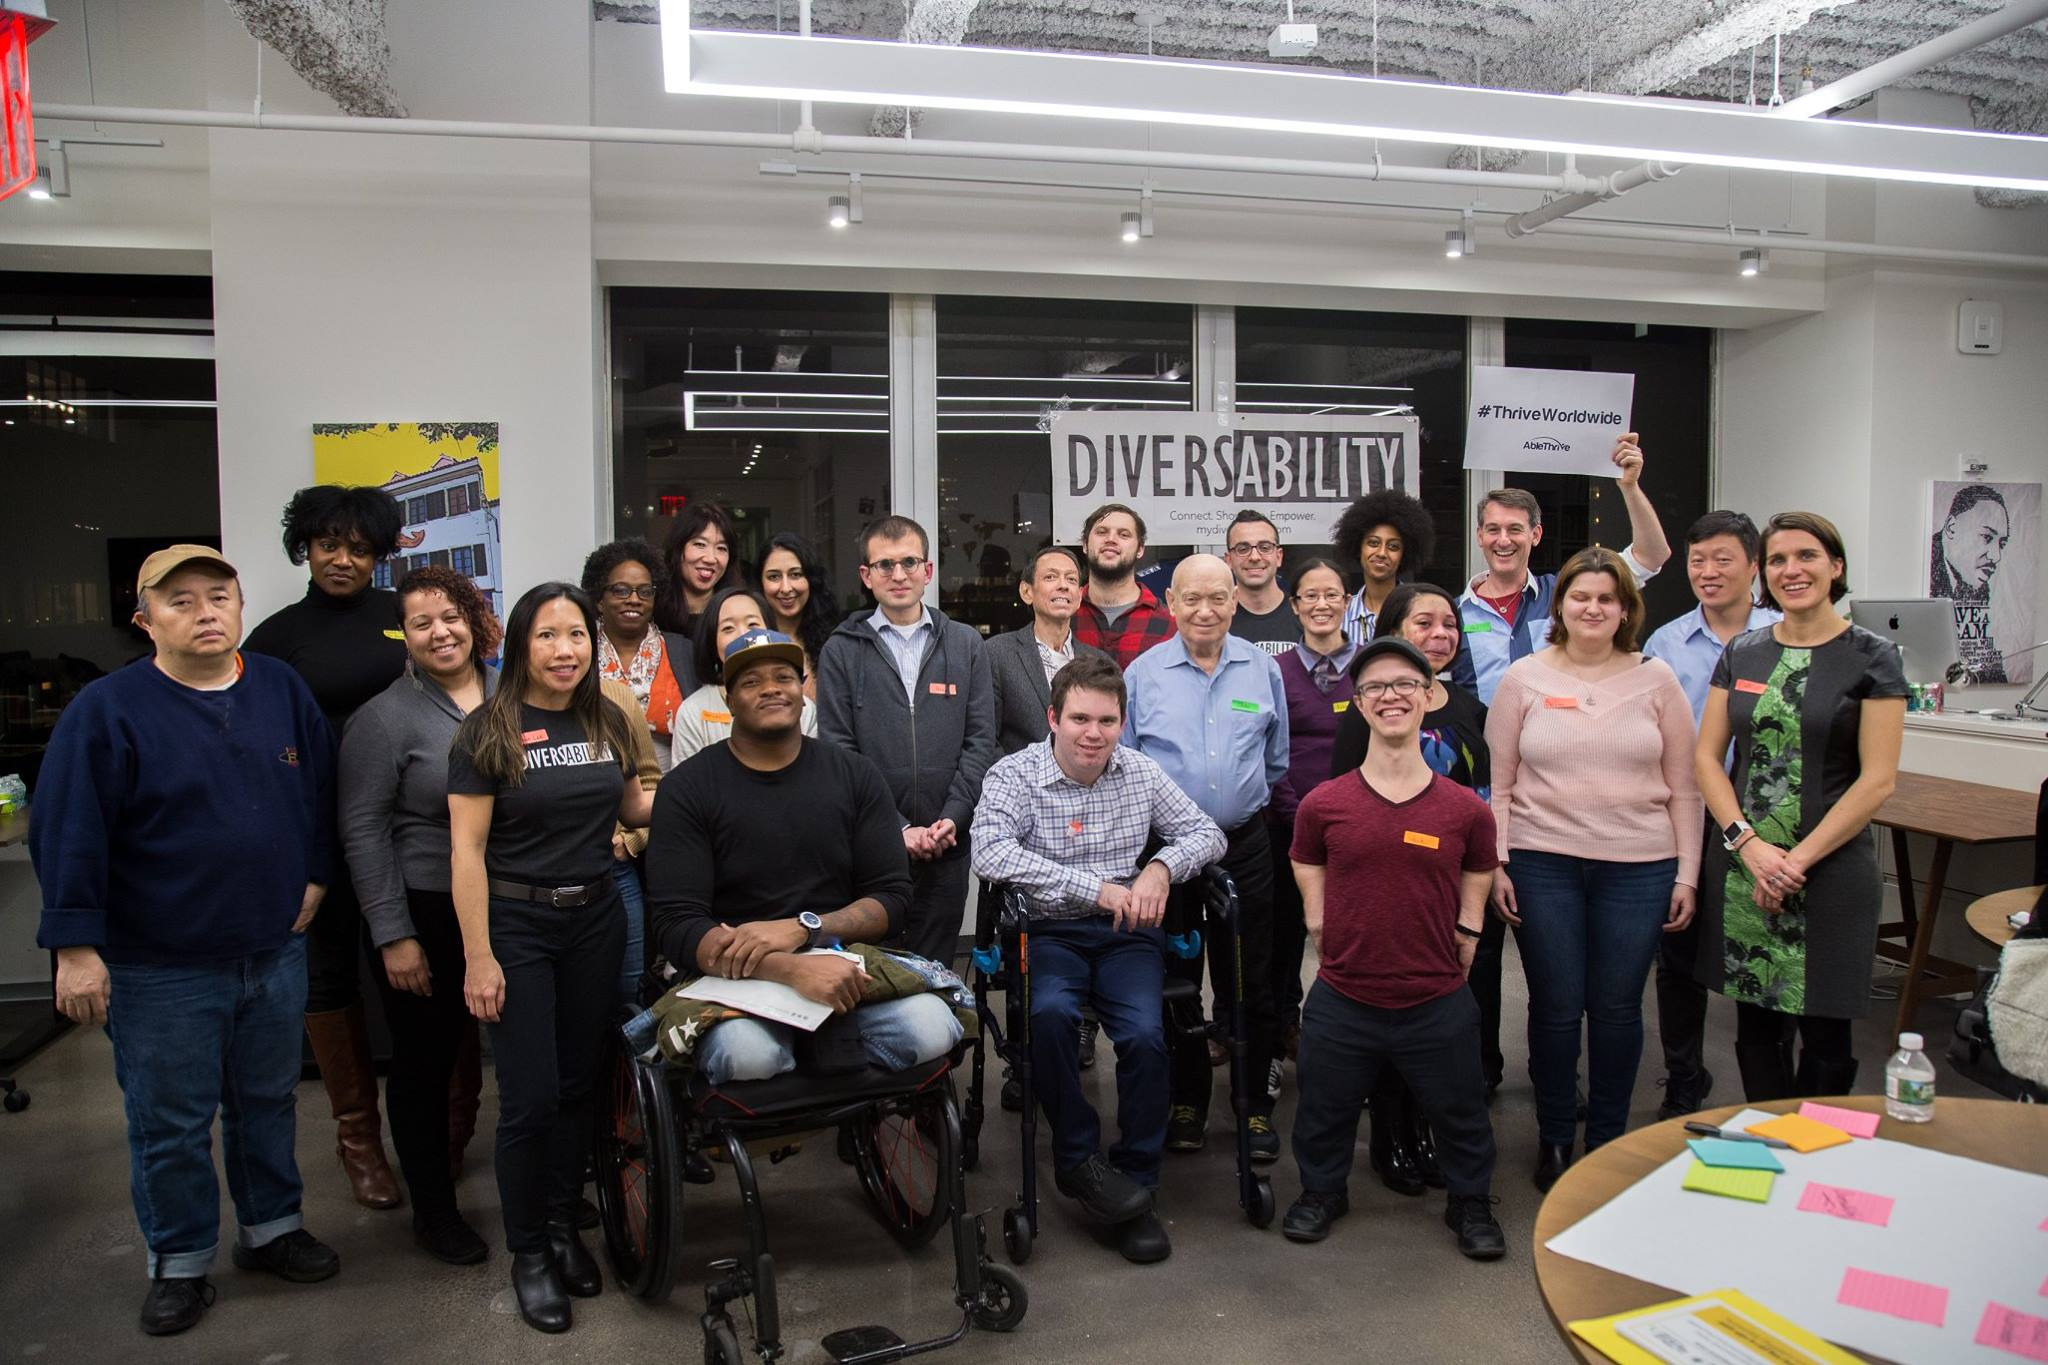 [Photo Description: A large group of Diversability community members posing for a photo at a community event]